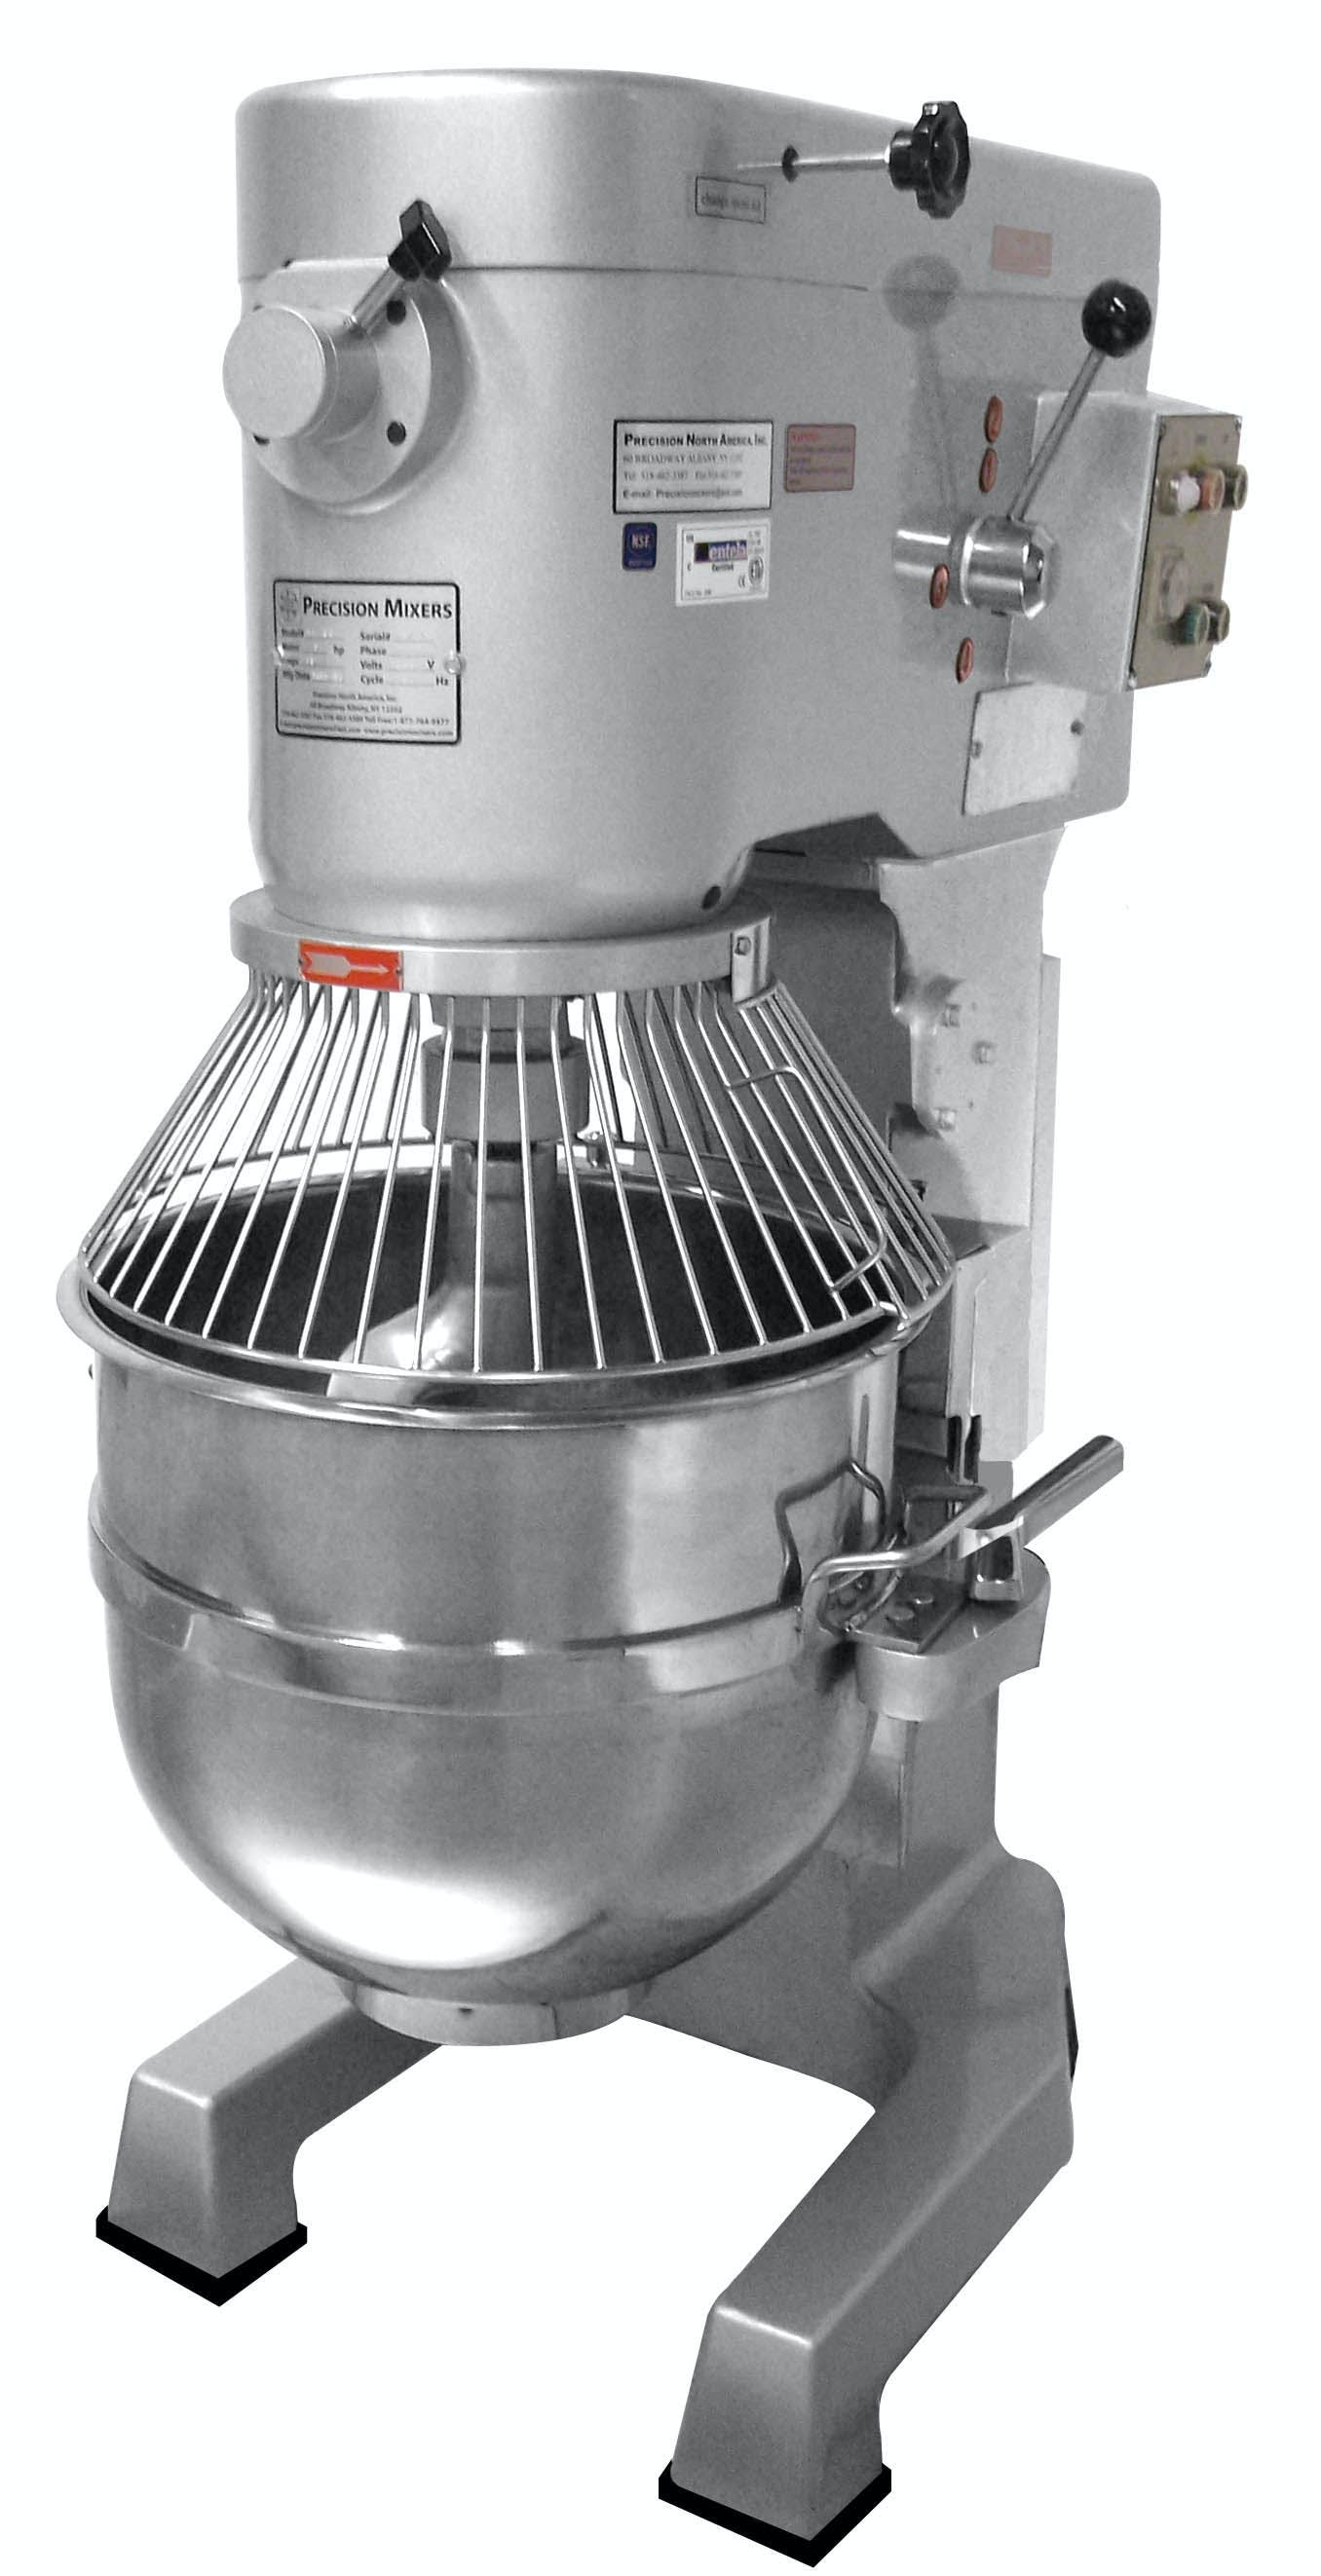 V-80EL Mixer sold by Precision North America Food Machinery